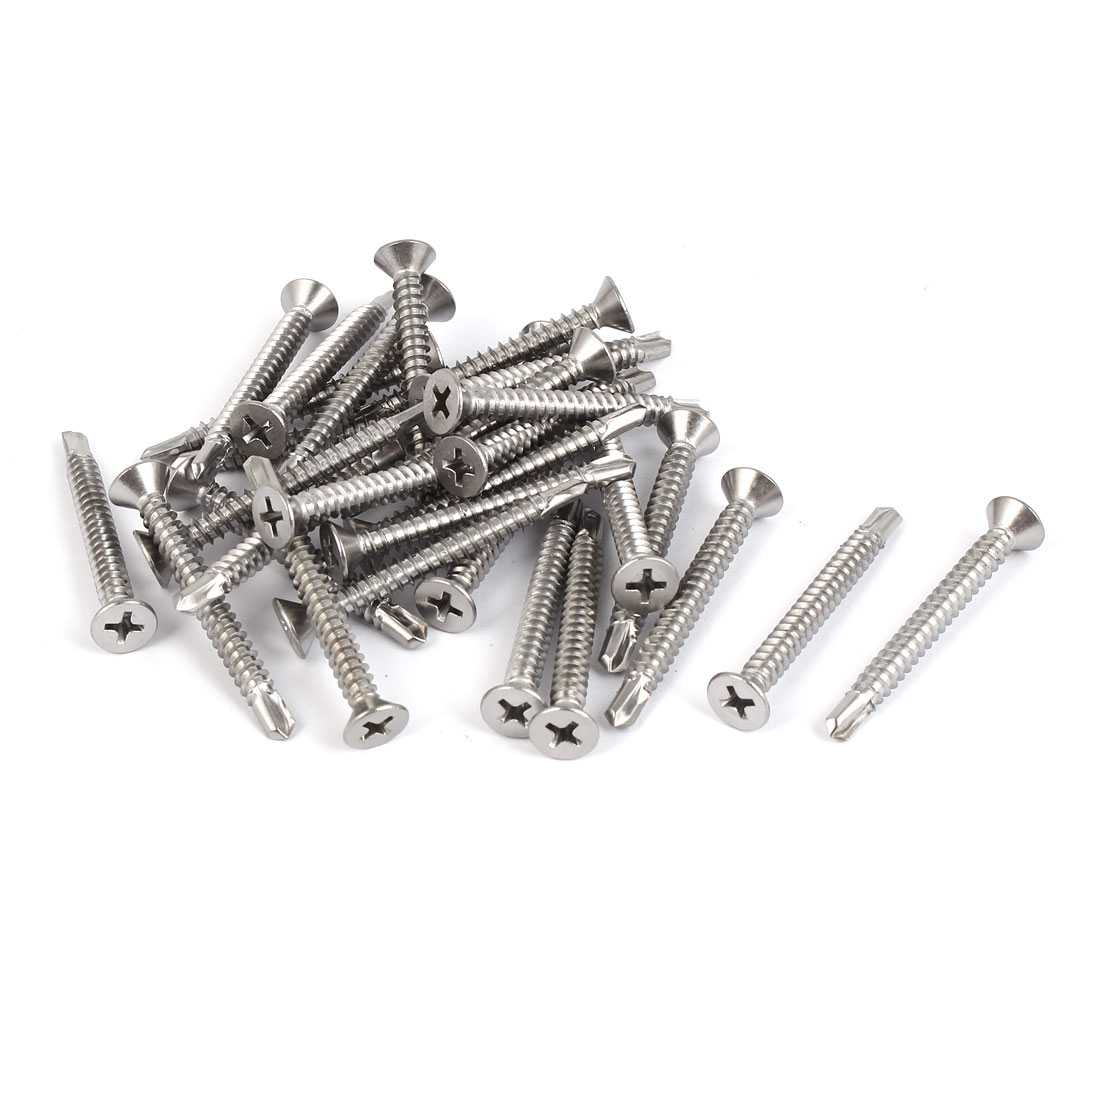 M4.8 #10 Male Thread Self Drilling Countersunk Head Screws 45mm Length 30 Pcs